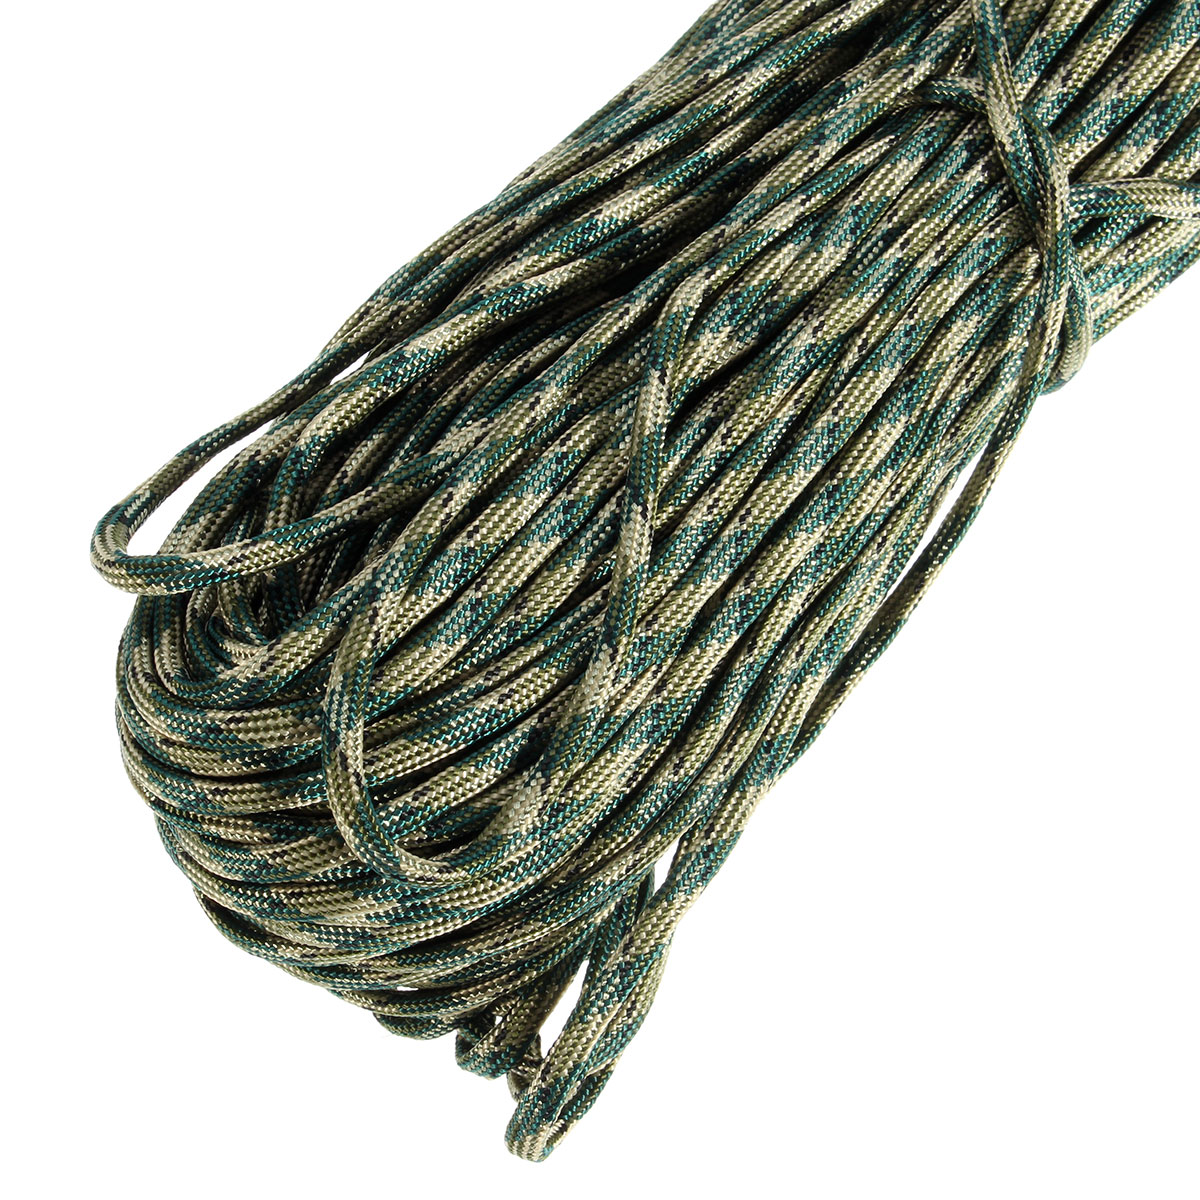 300 Feet 91m 7 Inner Strand Mil Survival Paracord Bushcraft Parachute Cord Lanyard Rope Type III